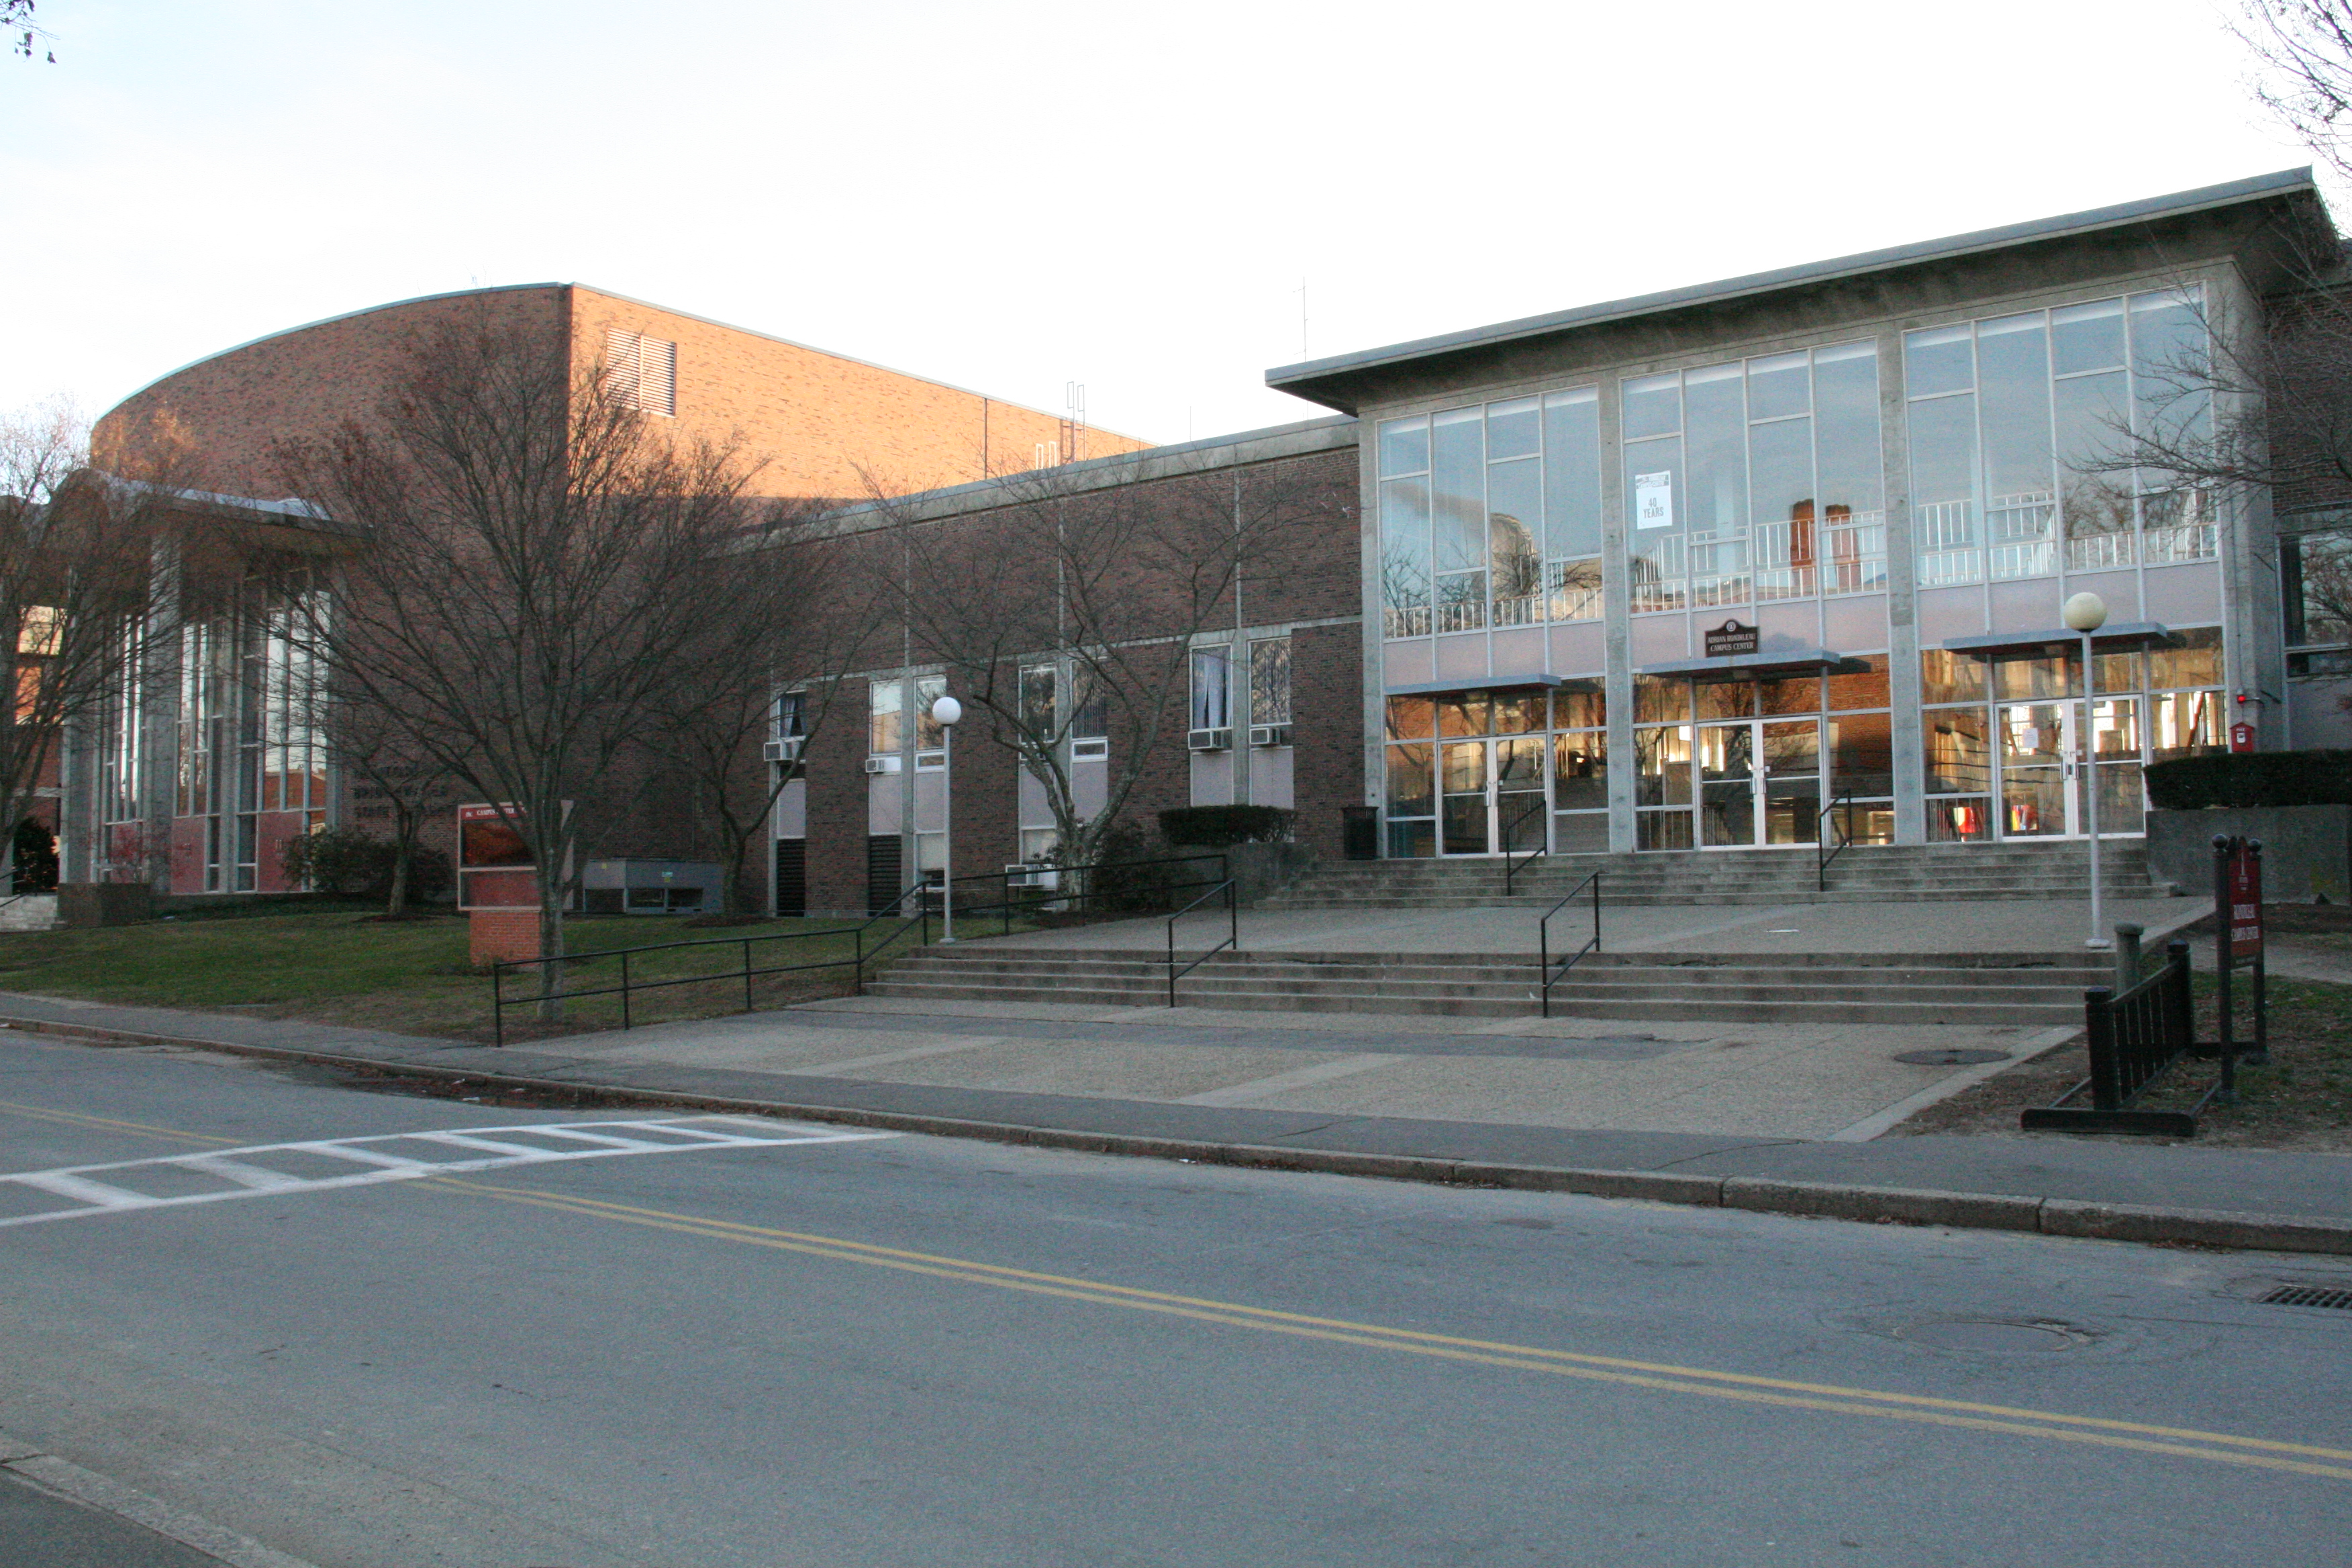 File:Rondileau Campus Center (RCC) front.JPG - Wikimedia Commons